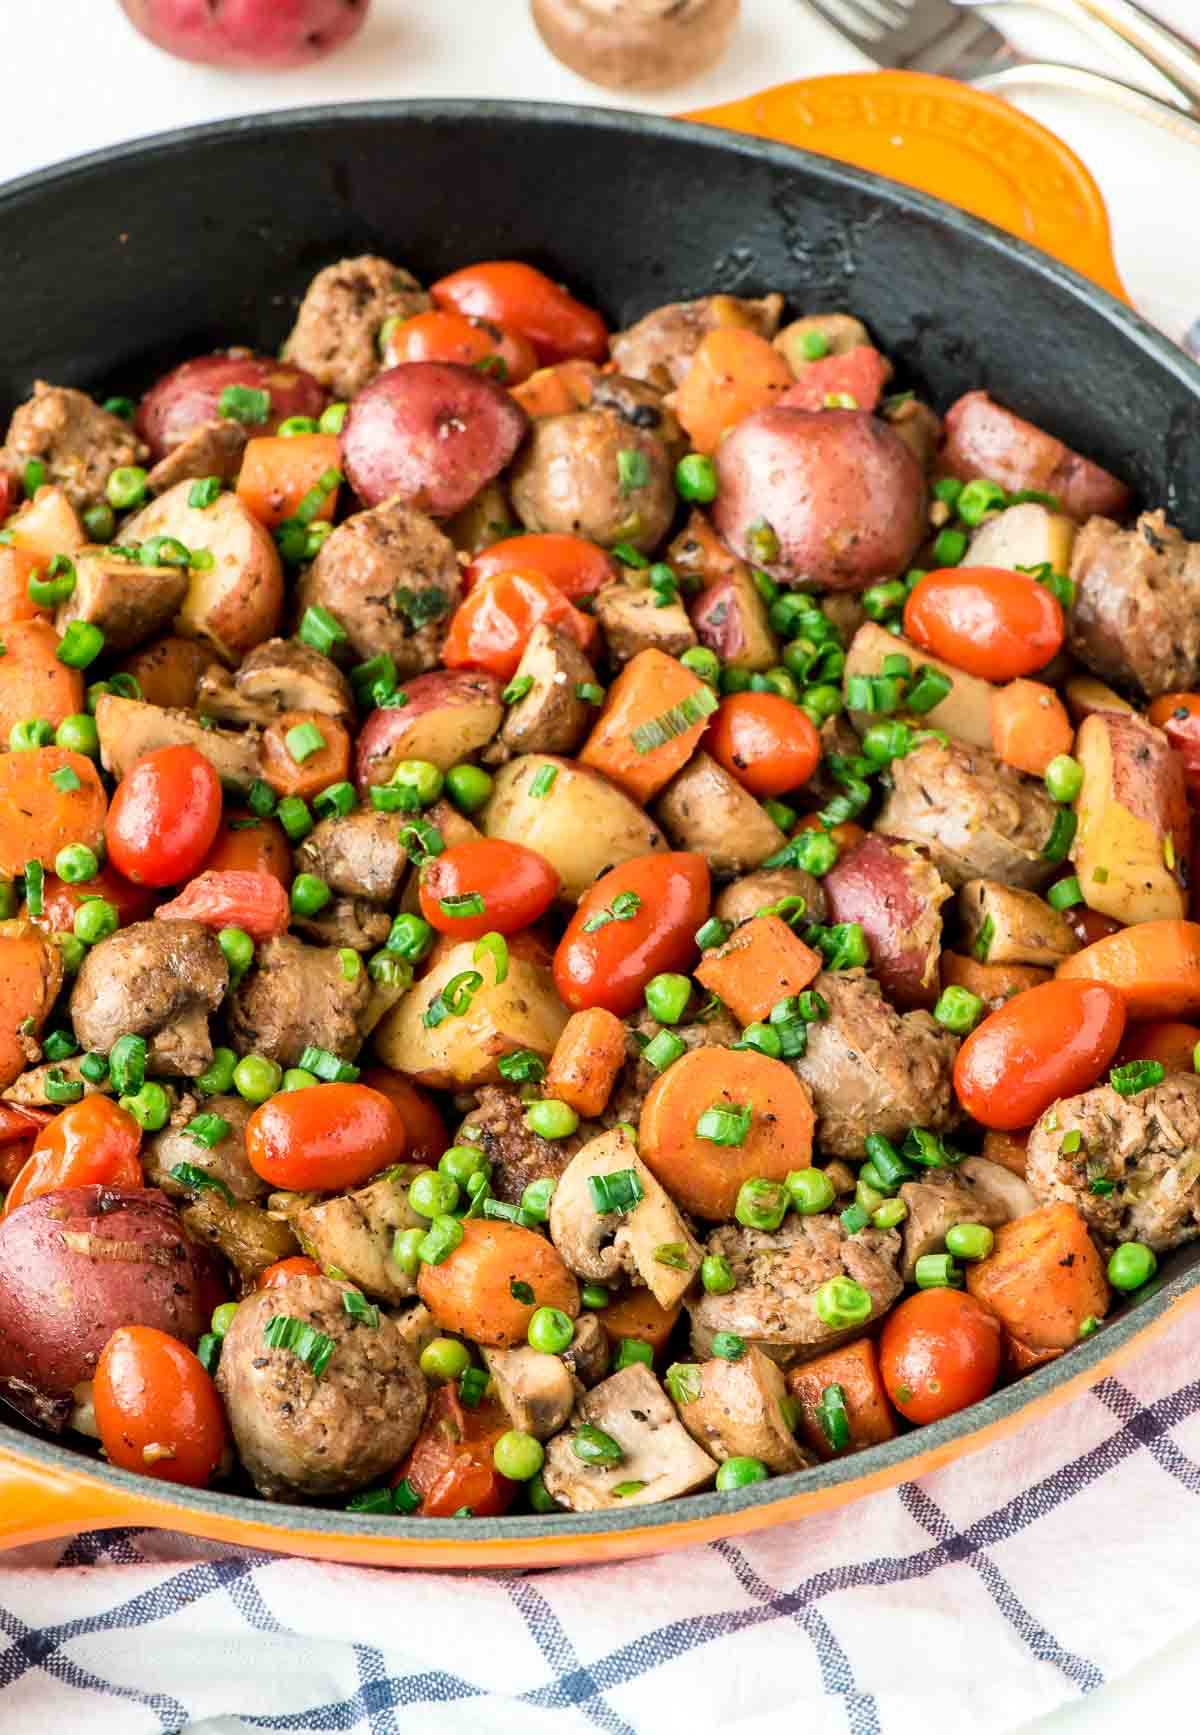 An easy On Pan Italian Sausage Skillet filled with fresh veggies, smoky sausage, and potatoes. Nutritious, filling, and you'll only have one pan to wash! Perfect for an easy dinner. @wellplated